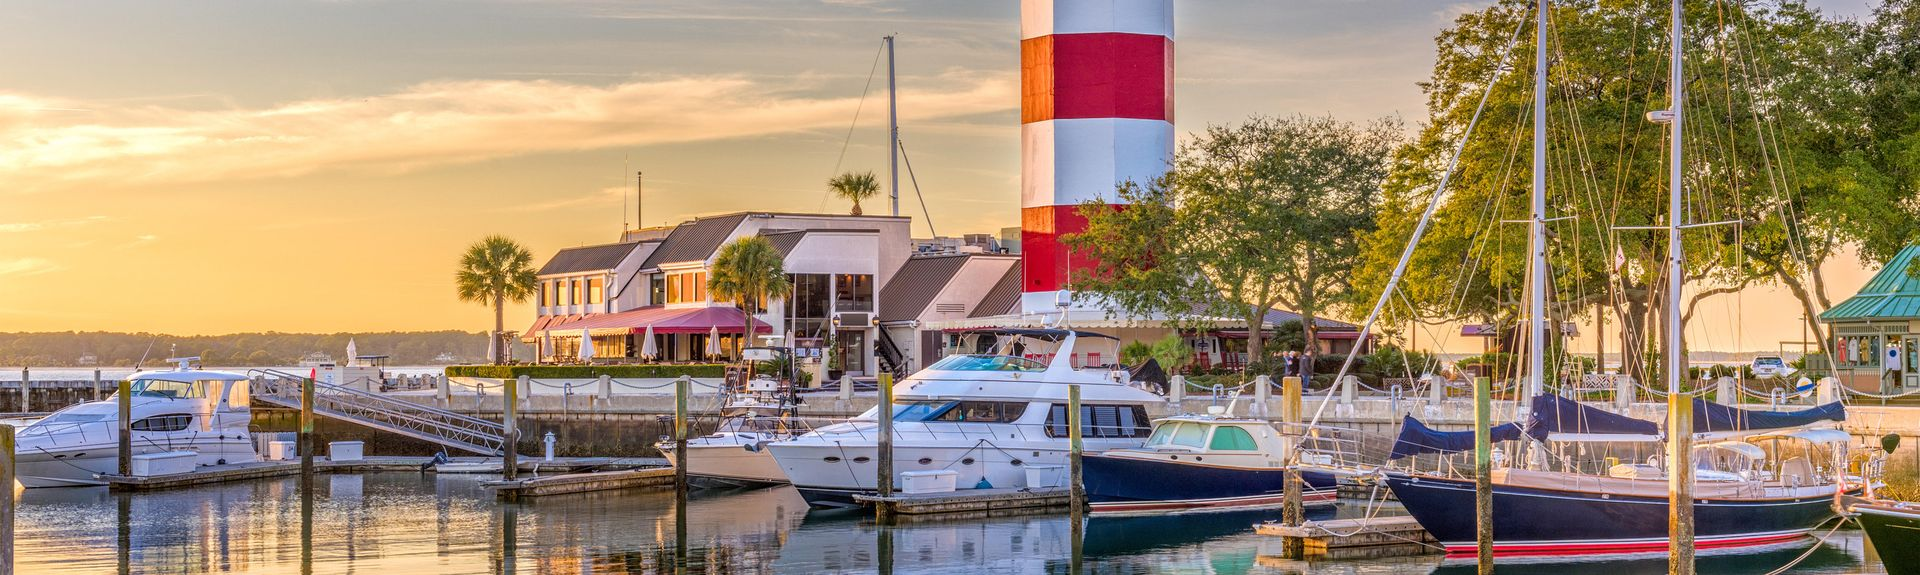 Hilton Head Island, Carolina do Sul, Estados Unidos